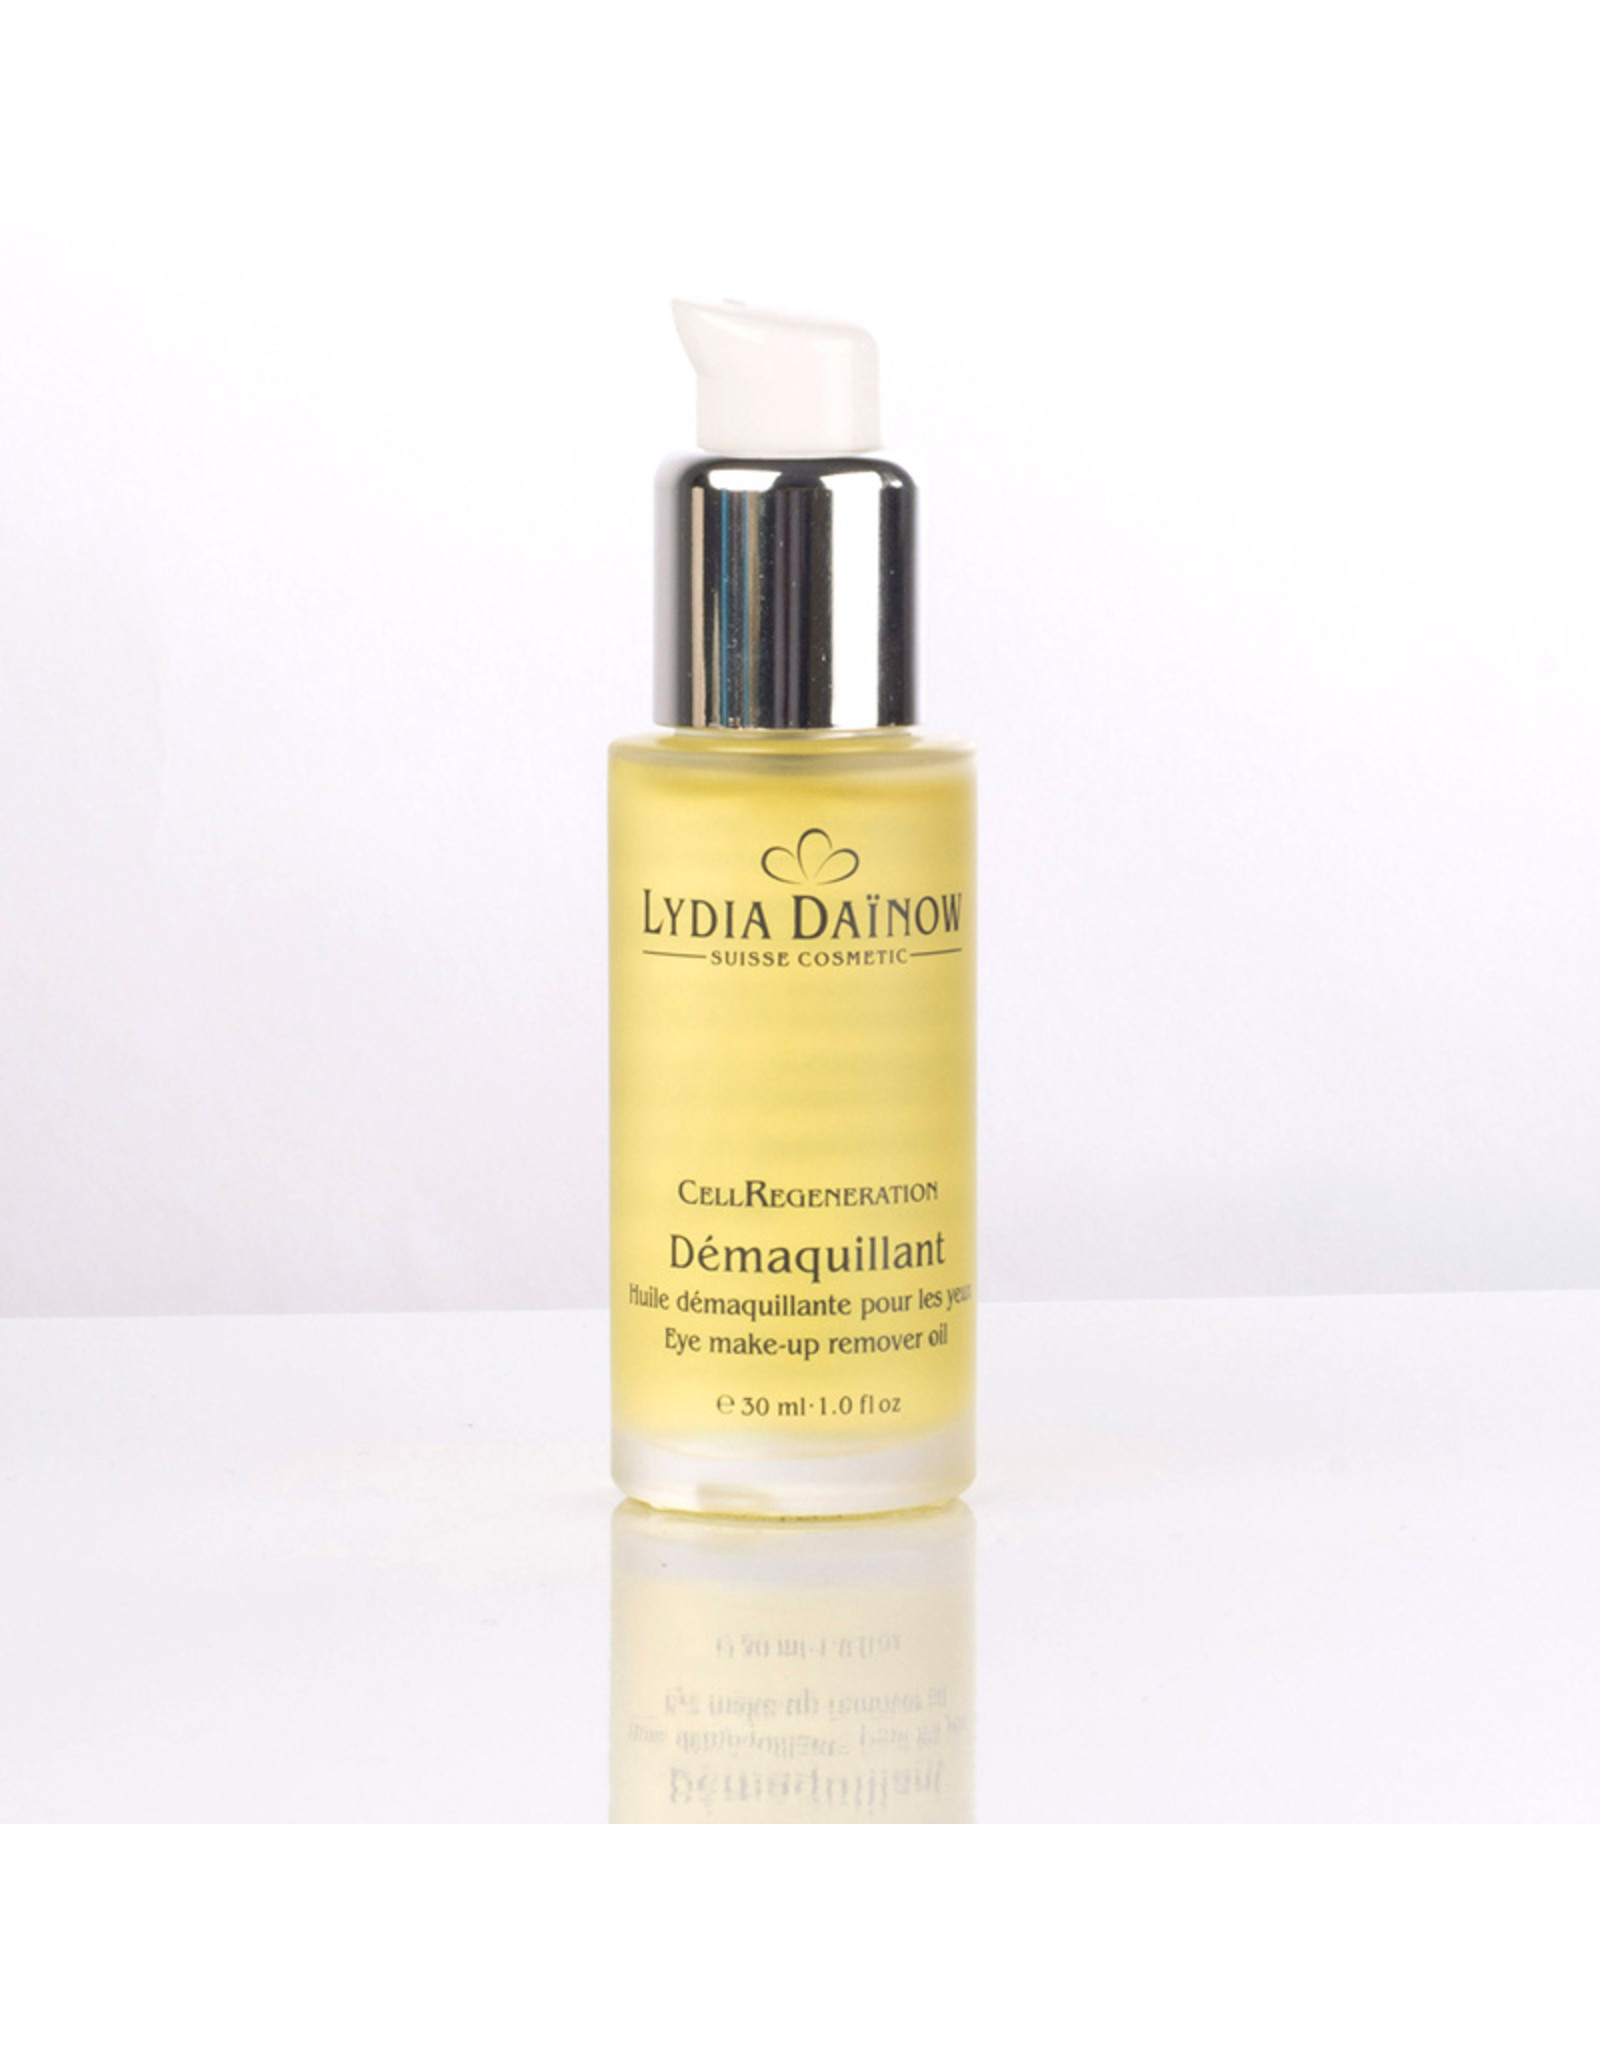 Lydïa Dainow Démaquillant - Eye make-up remover oil